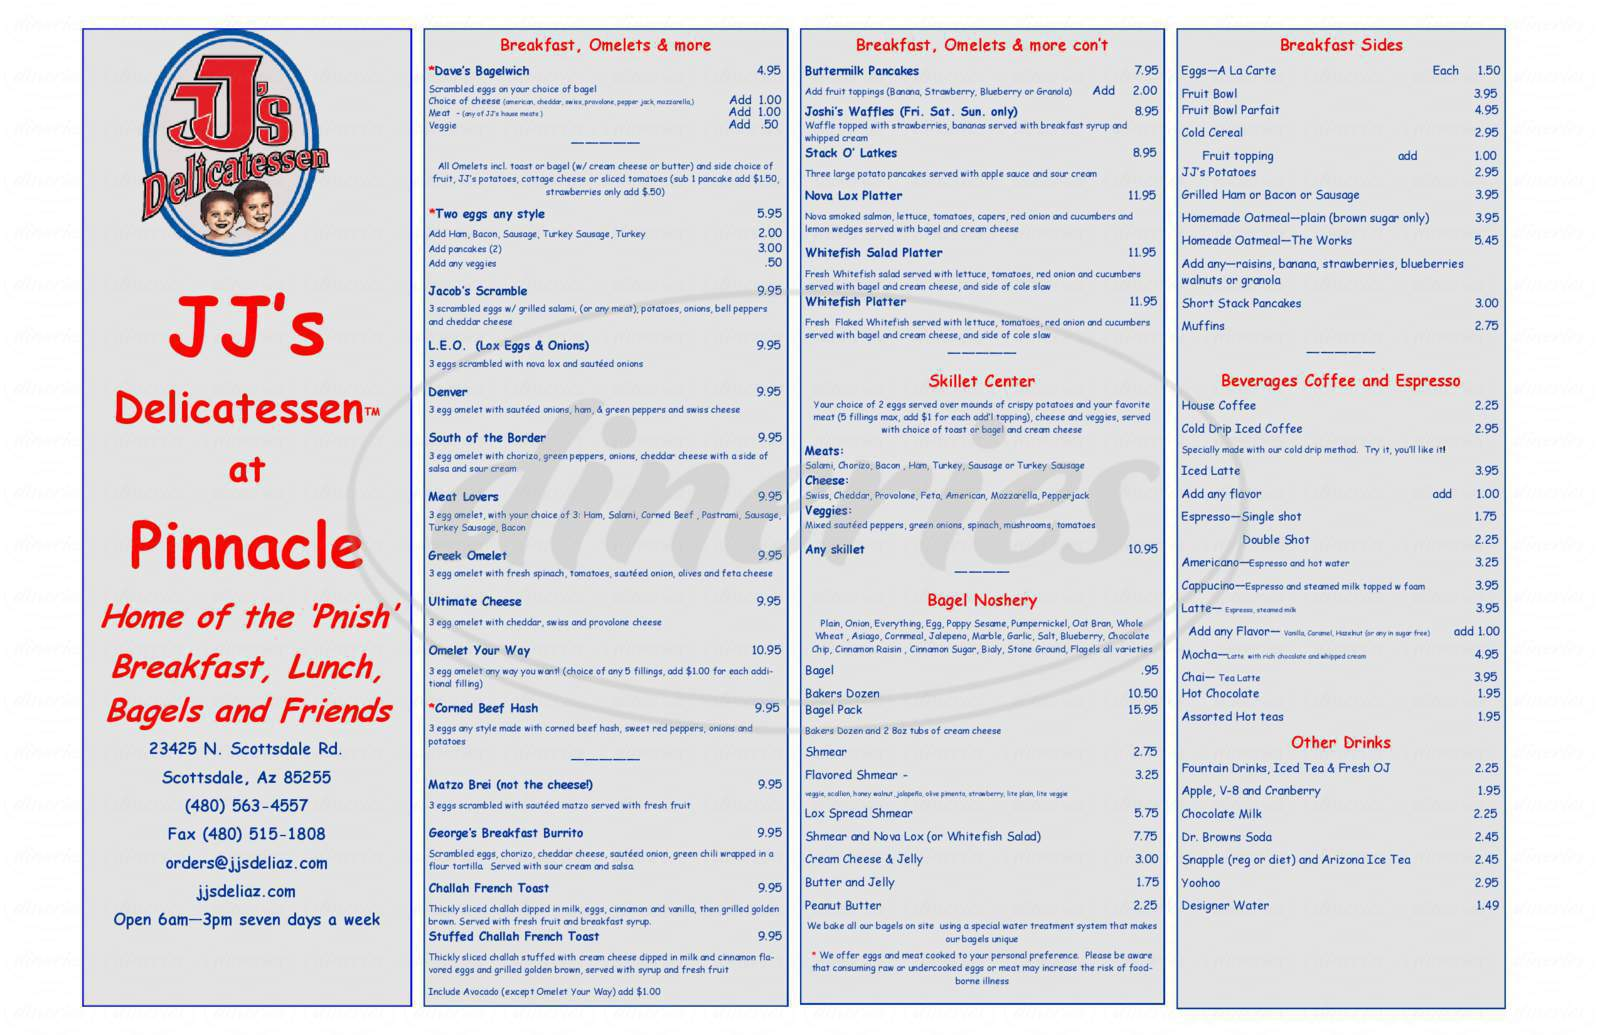 menu for JJ's Delicatessen